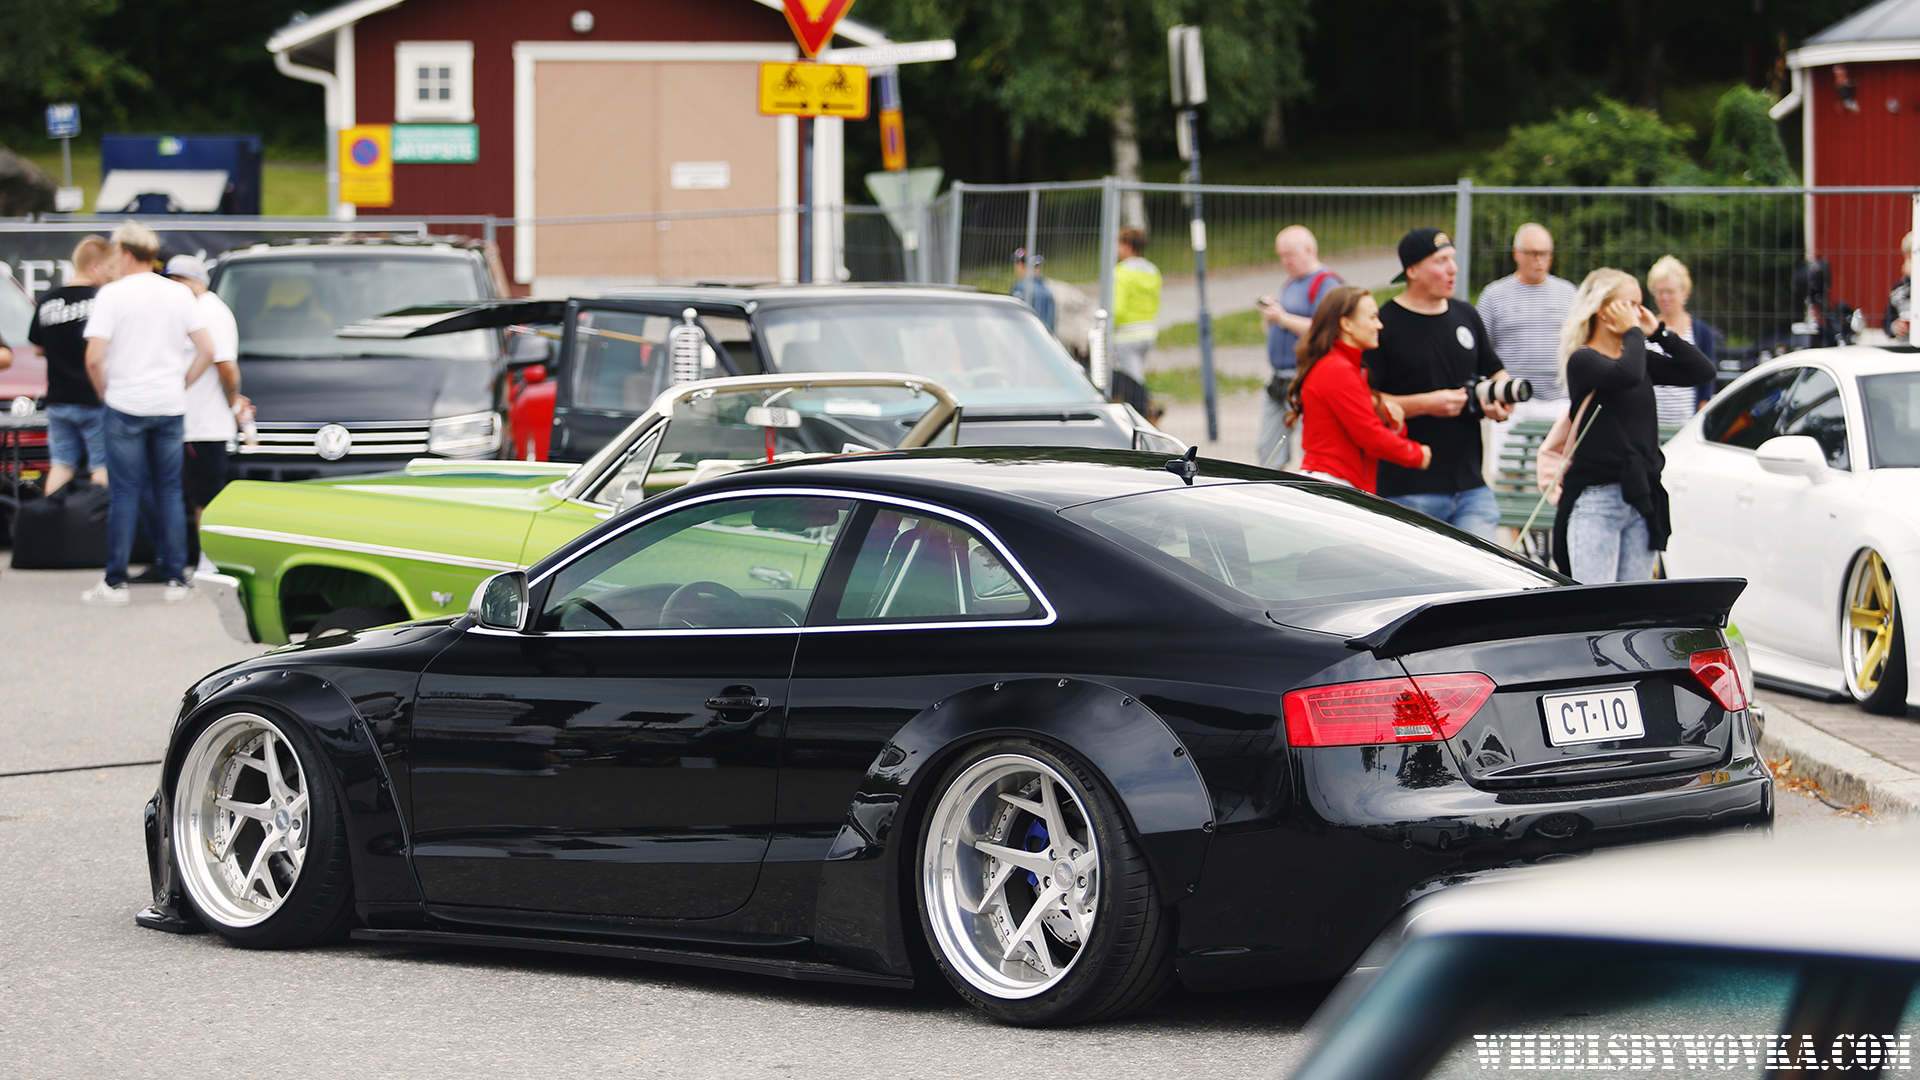 fitted-fest-lahti-finland-cdlcco-2018-by-wheelsbywovka-30